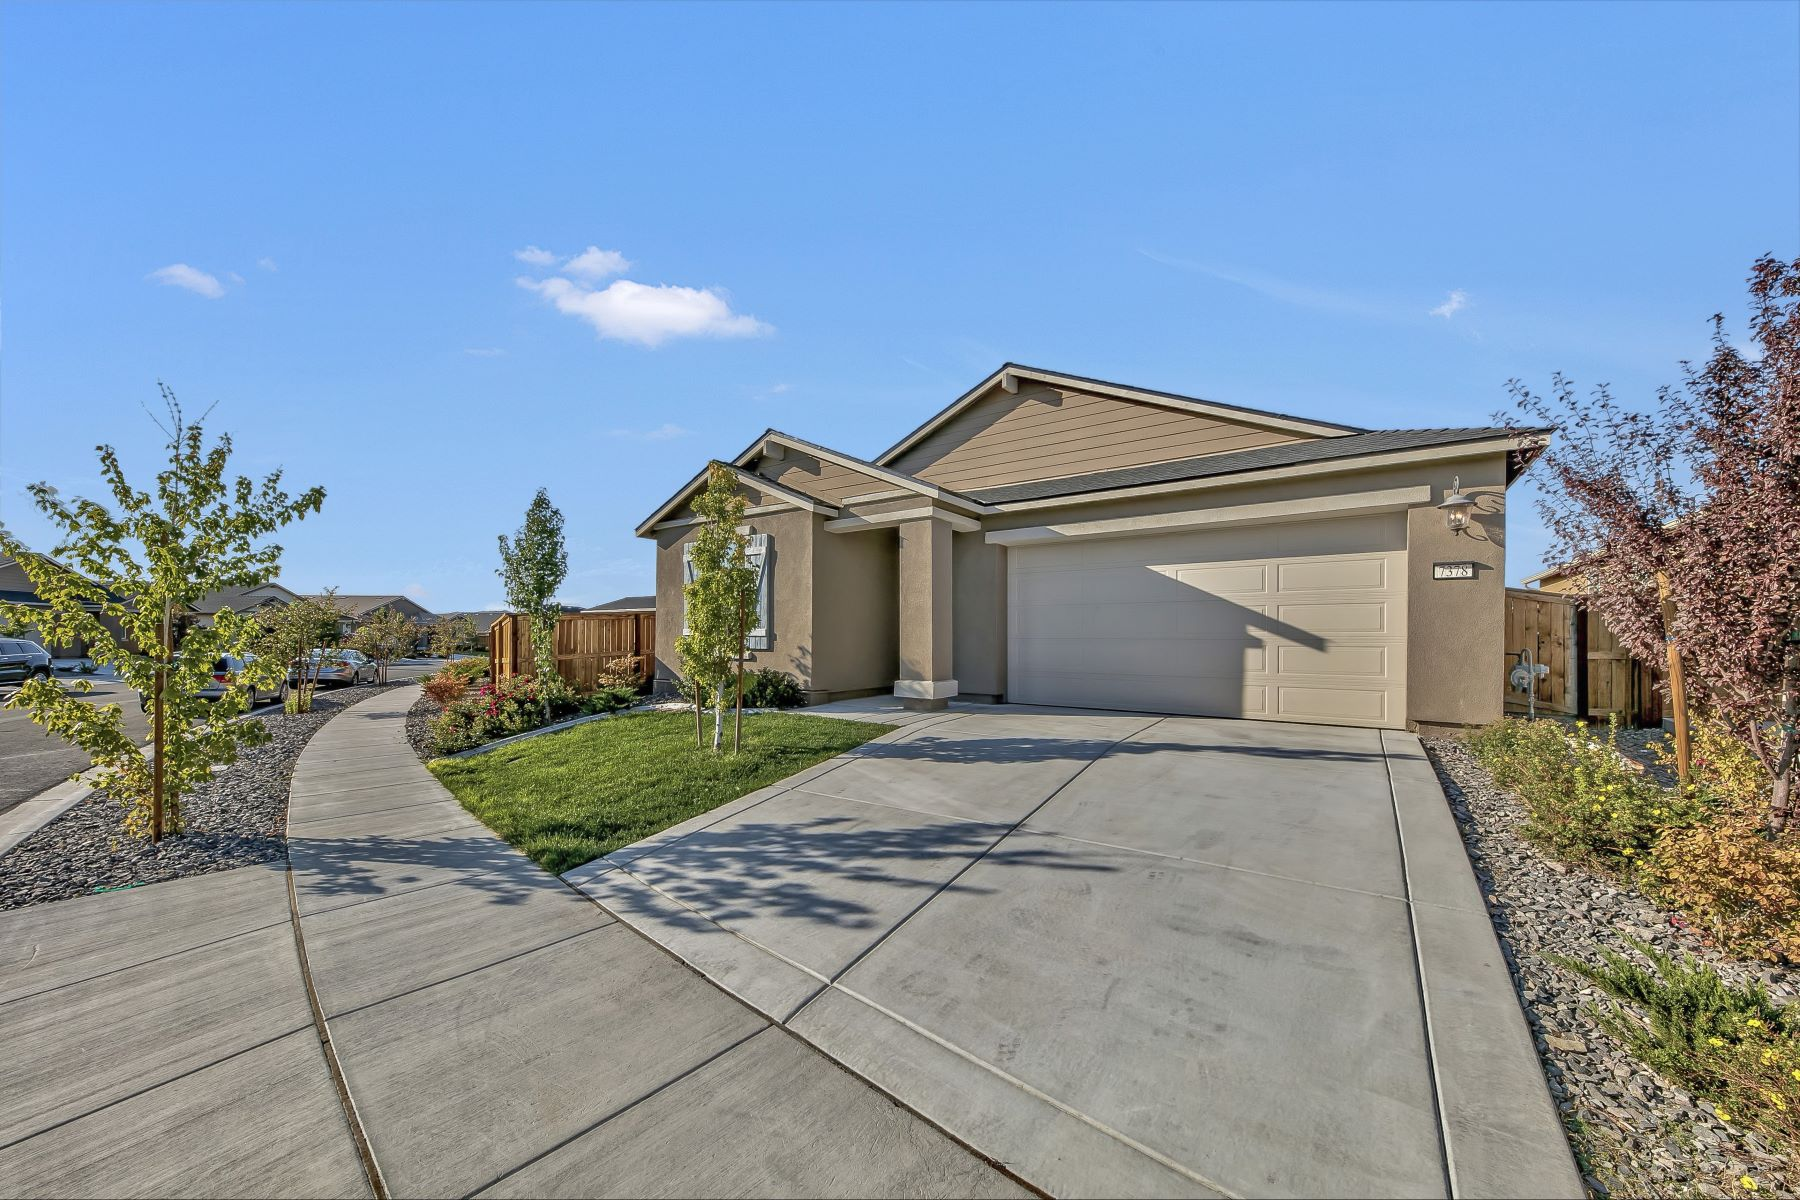 Single Family Homes for Active at Better Than New One Level Living 7378 Overture Dr Reno, Nevada 89506 United States